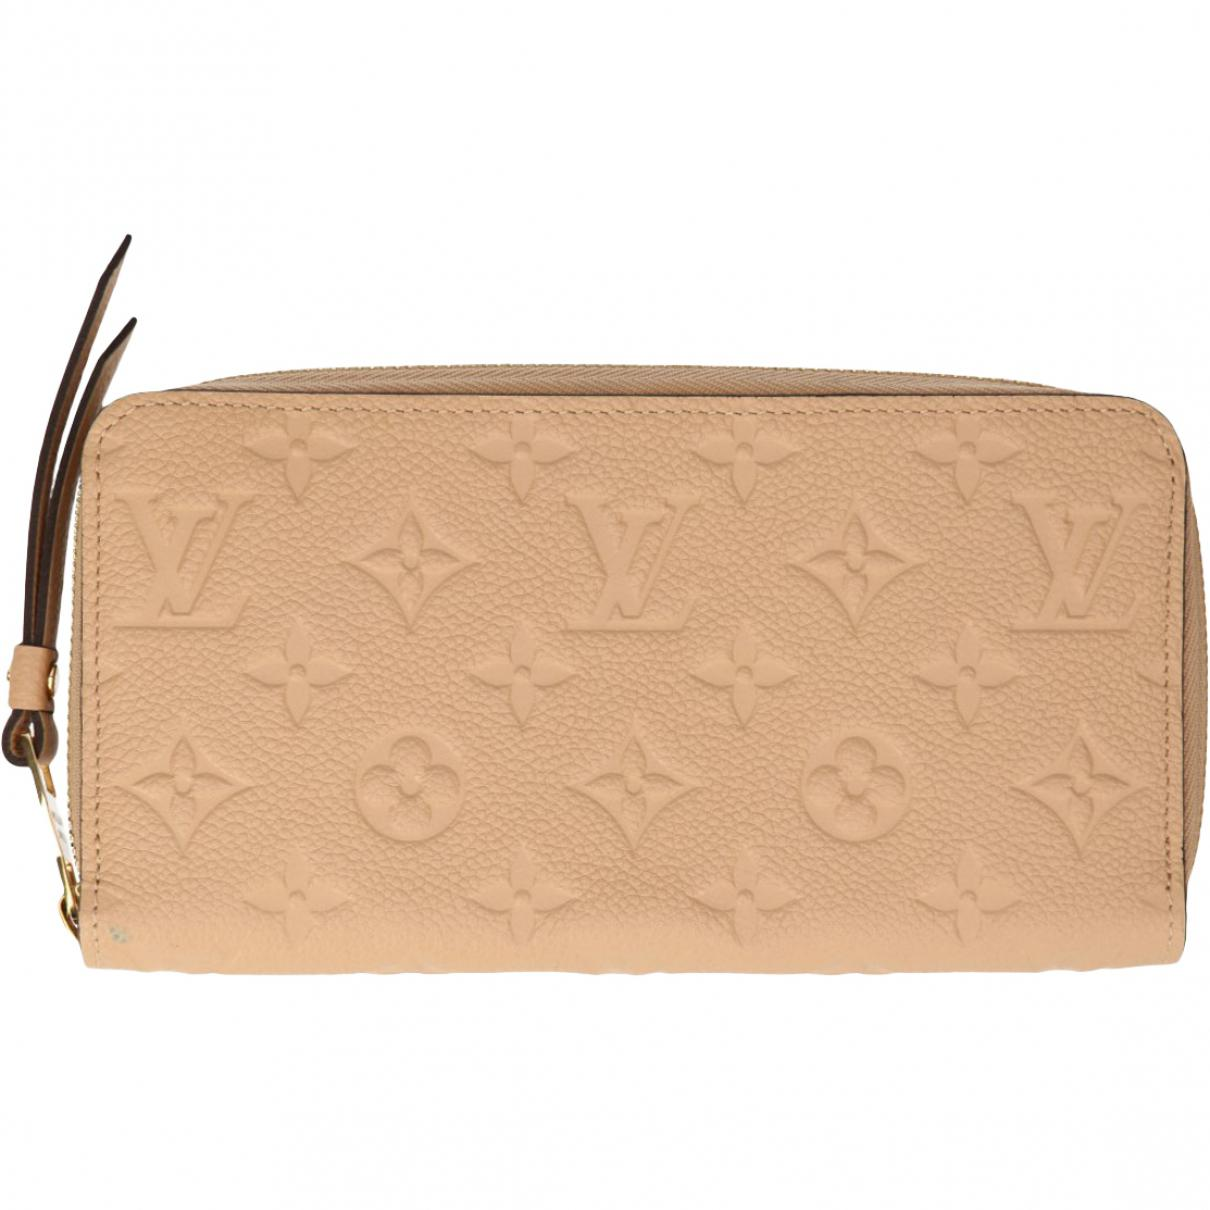 9d59a818361 Lyst - Louis Vuitton Pre-owned Zippy Leather Wallet in Natural